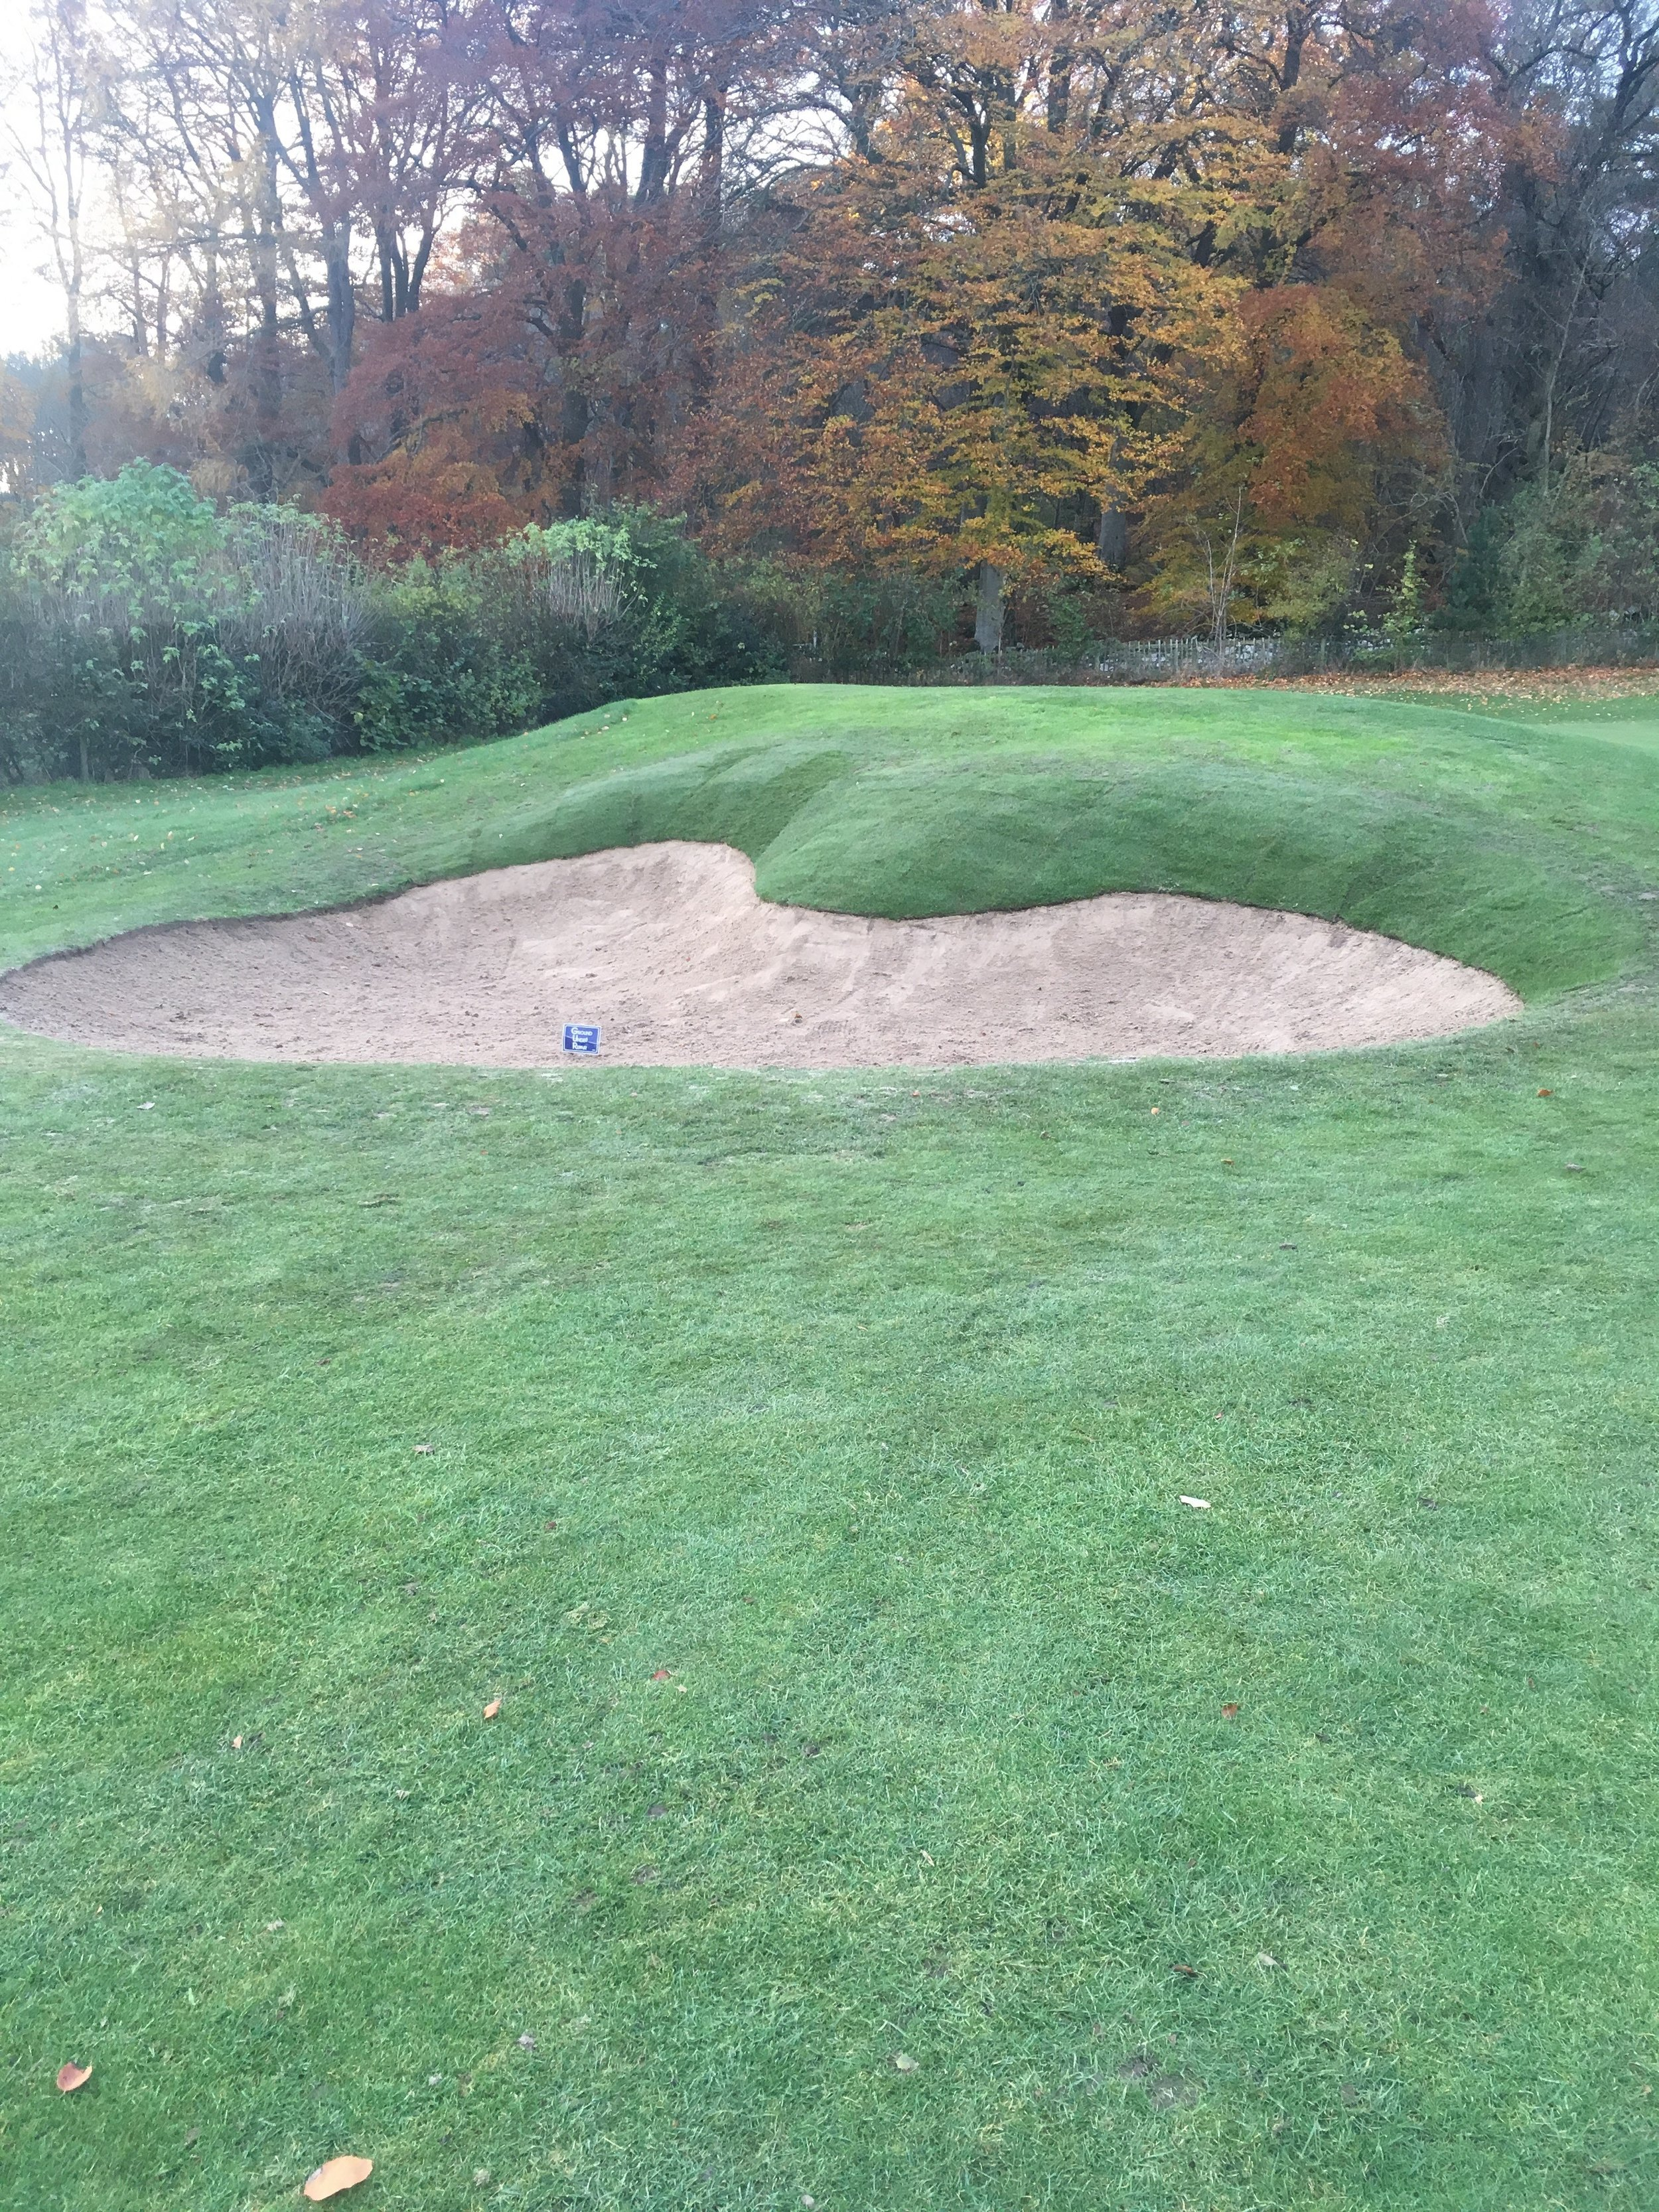 Completed greenside bunker on the 4th